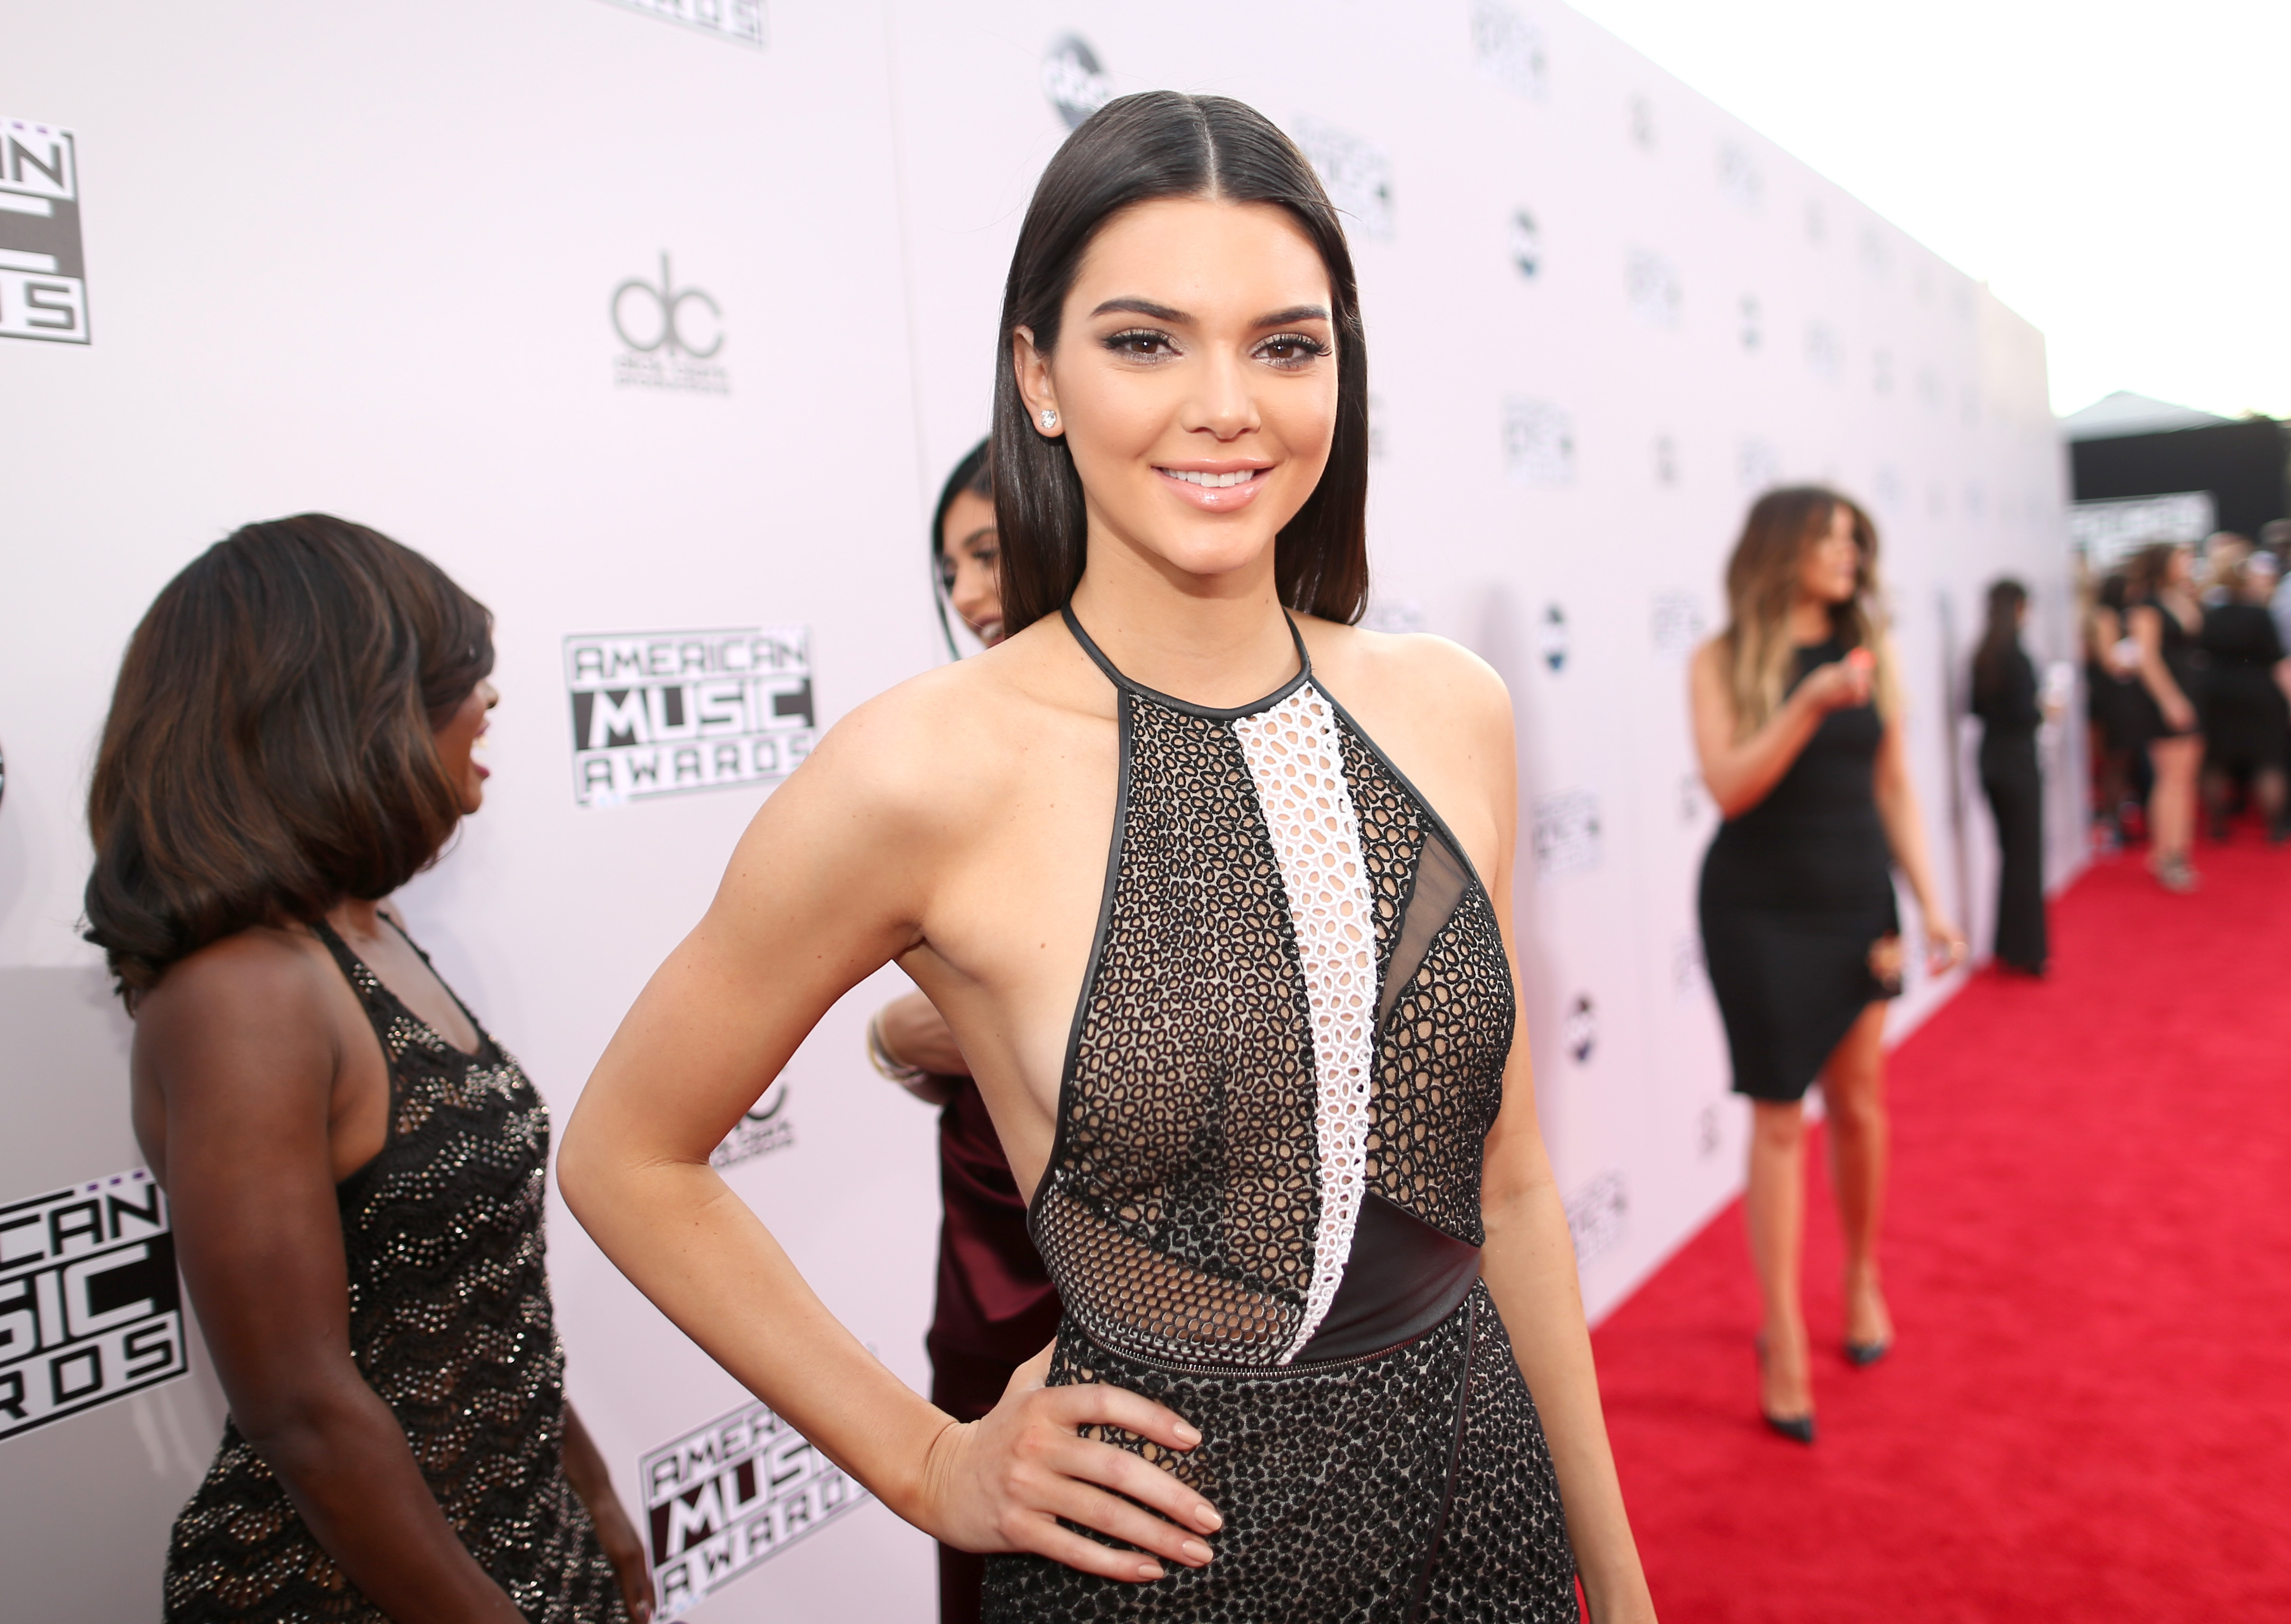 Kendall Jenner Appears To Be Naked On Instagram See The Now